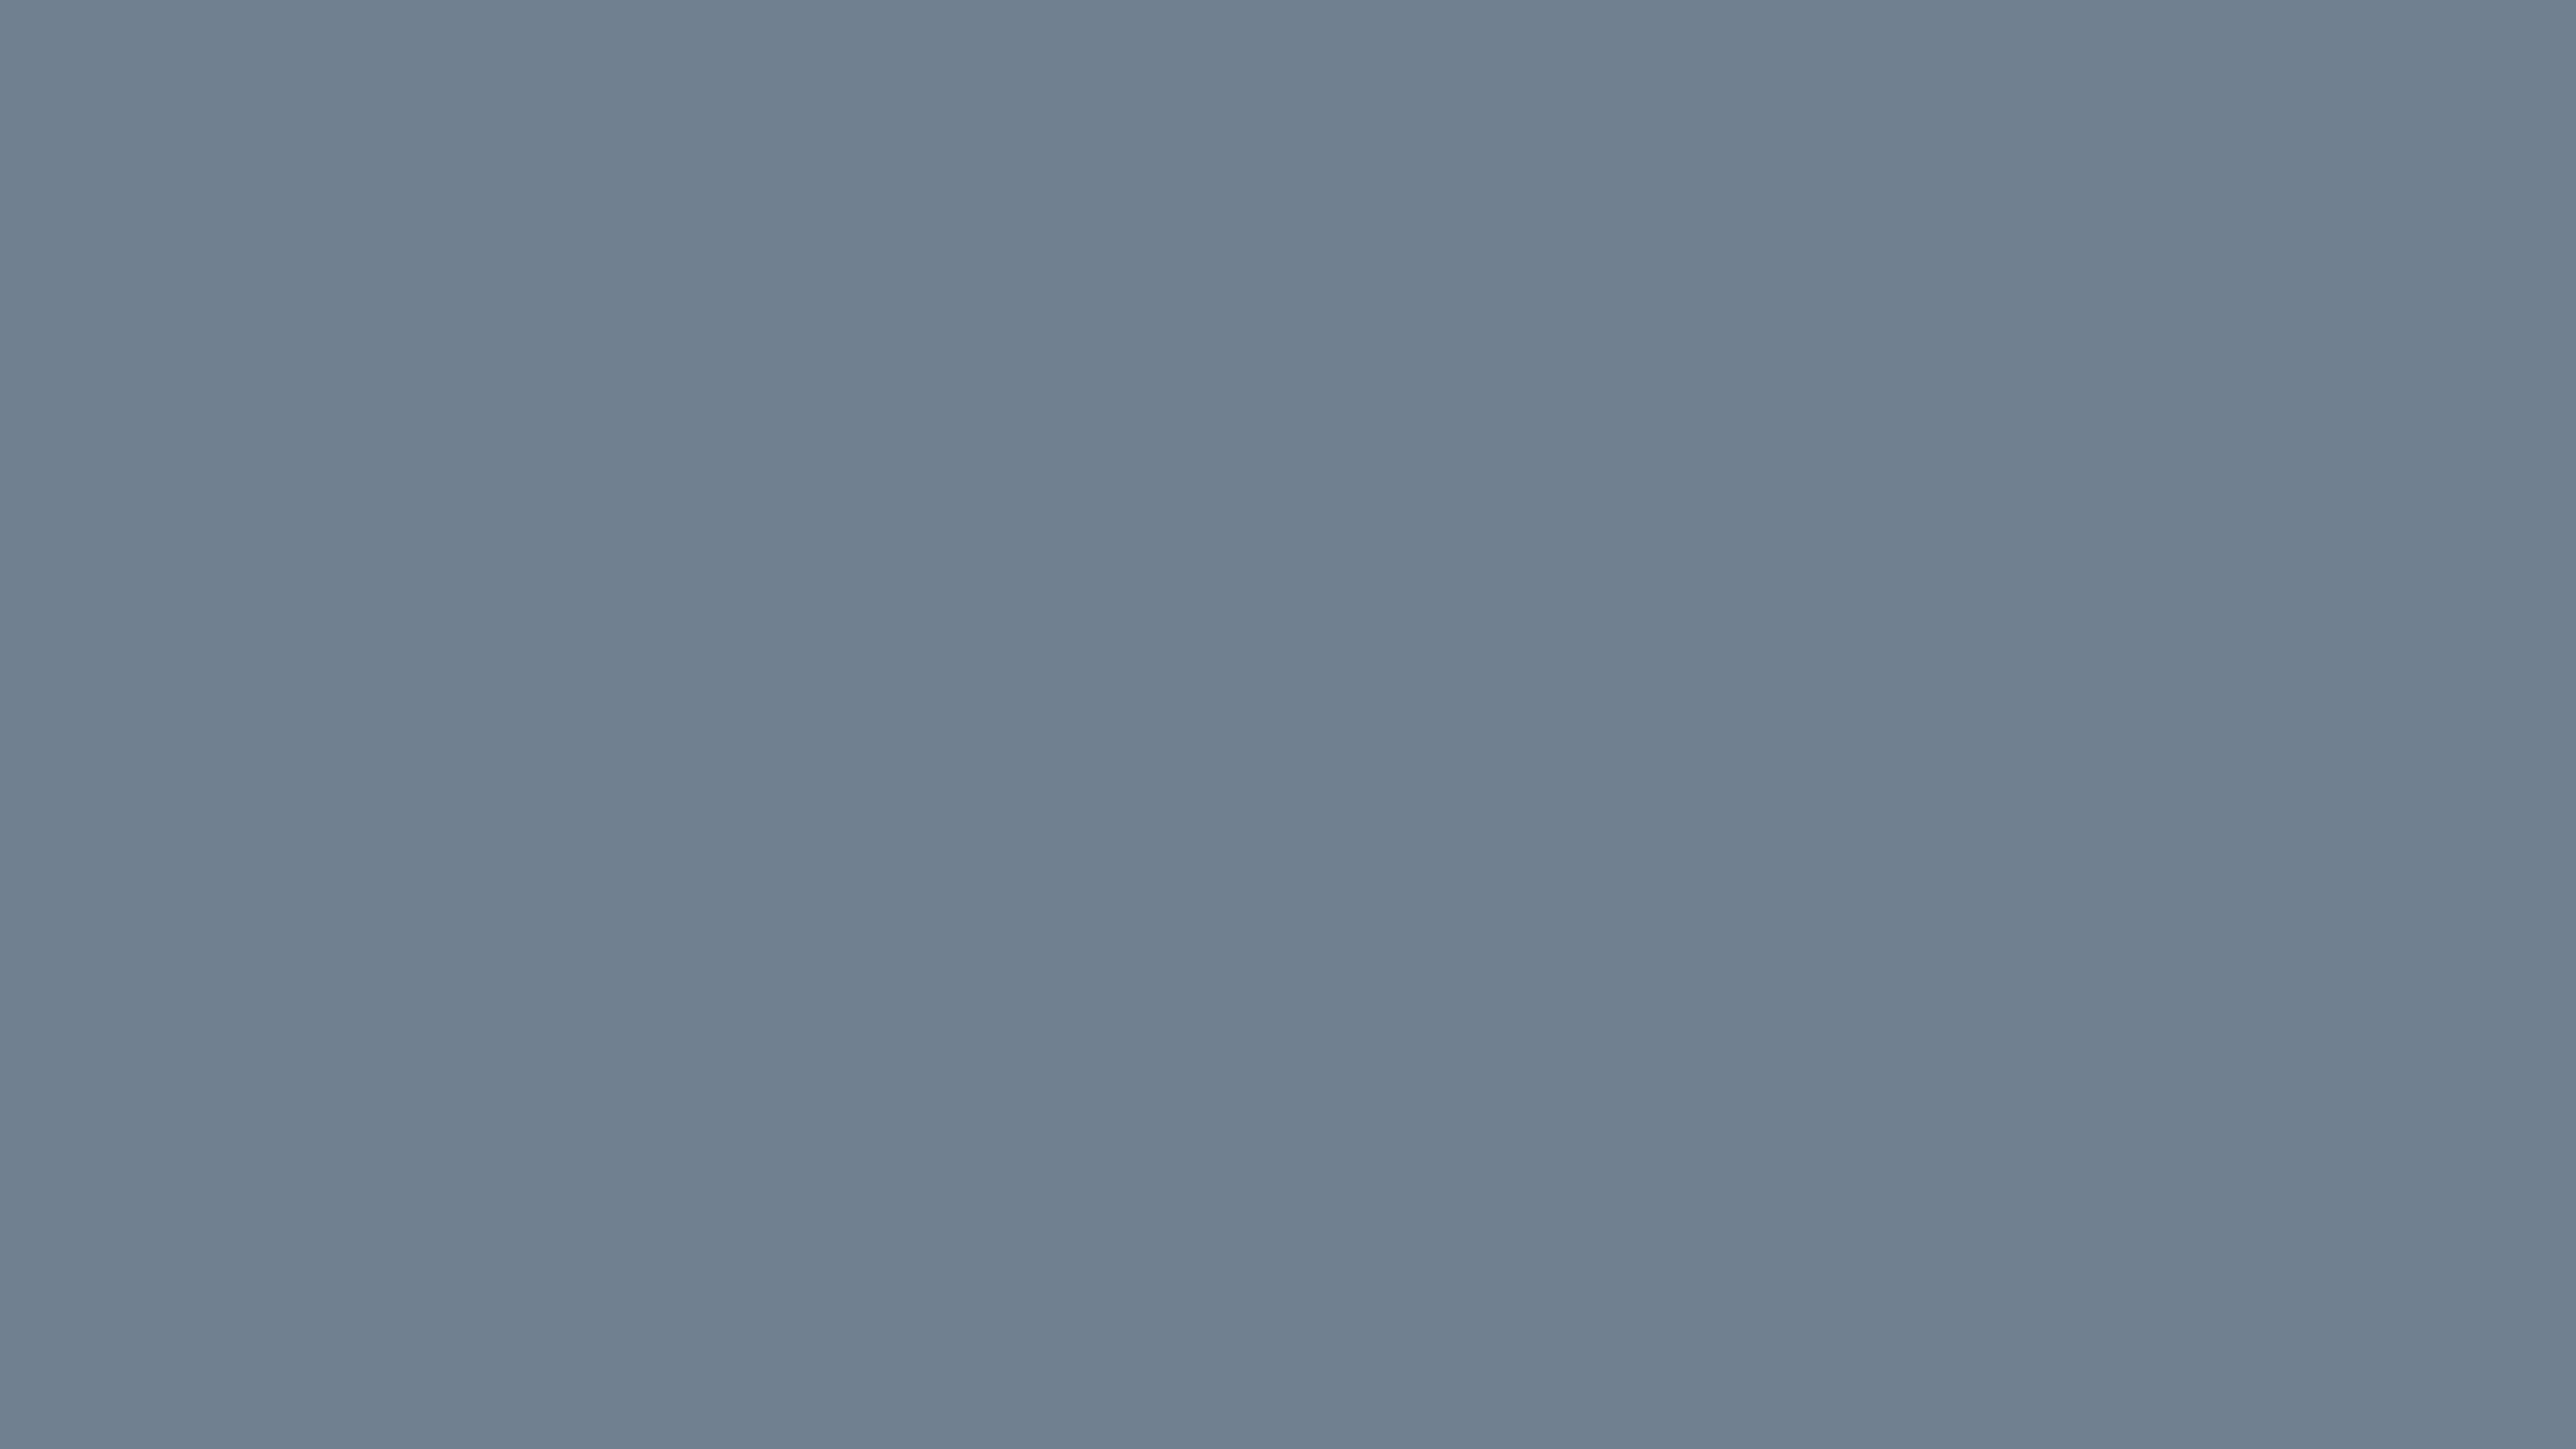 Slate Gray Solid Color Background Wallpaper 5120x2880 768x432